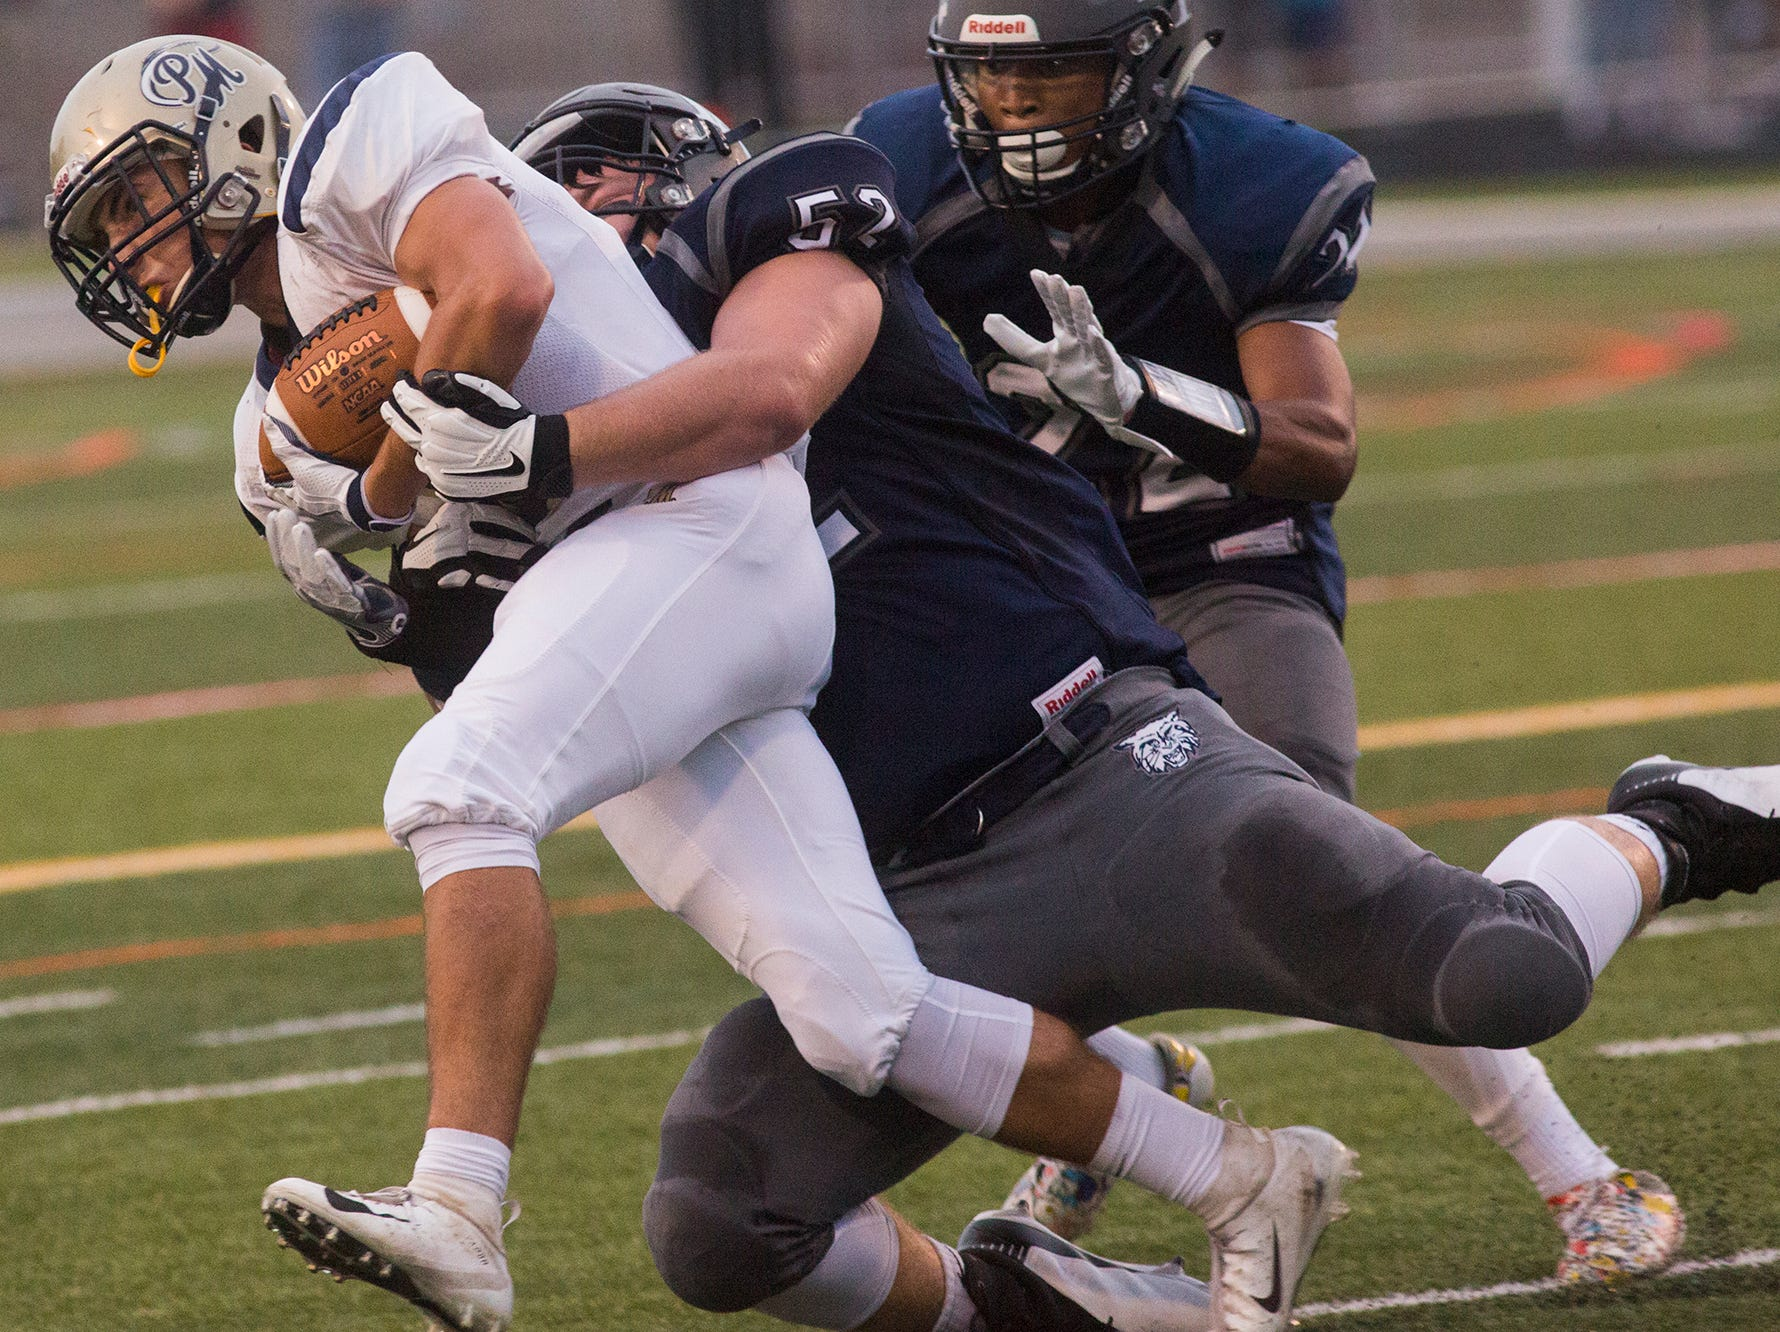 Dallastown's Lucas Skelley, center, tackles a Penn Manor ball carrier. Dallastown defeats Penn Manor 42-7 in football at Dallastown Area High School in Dallastown, Friday, September 7, 2018.